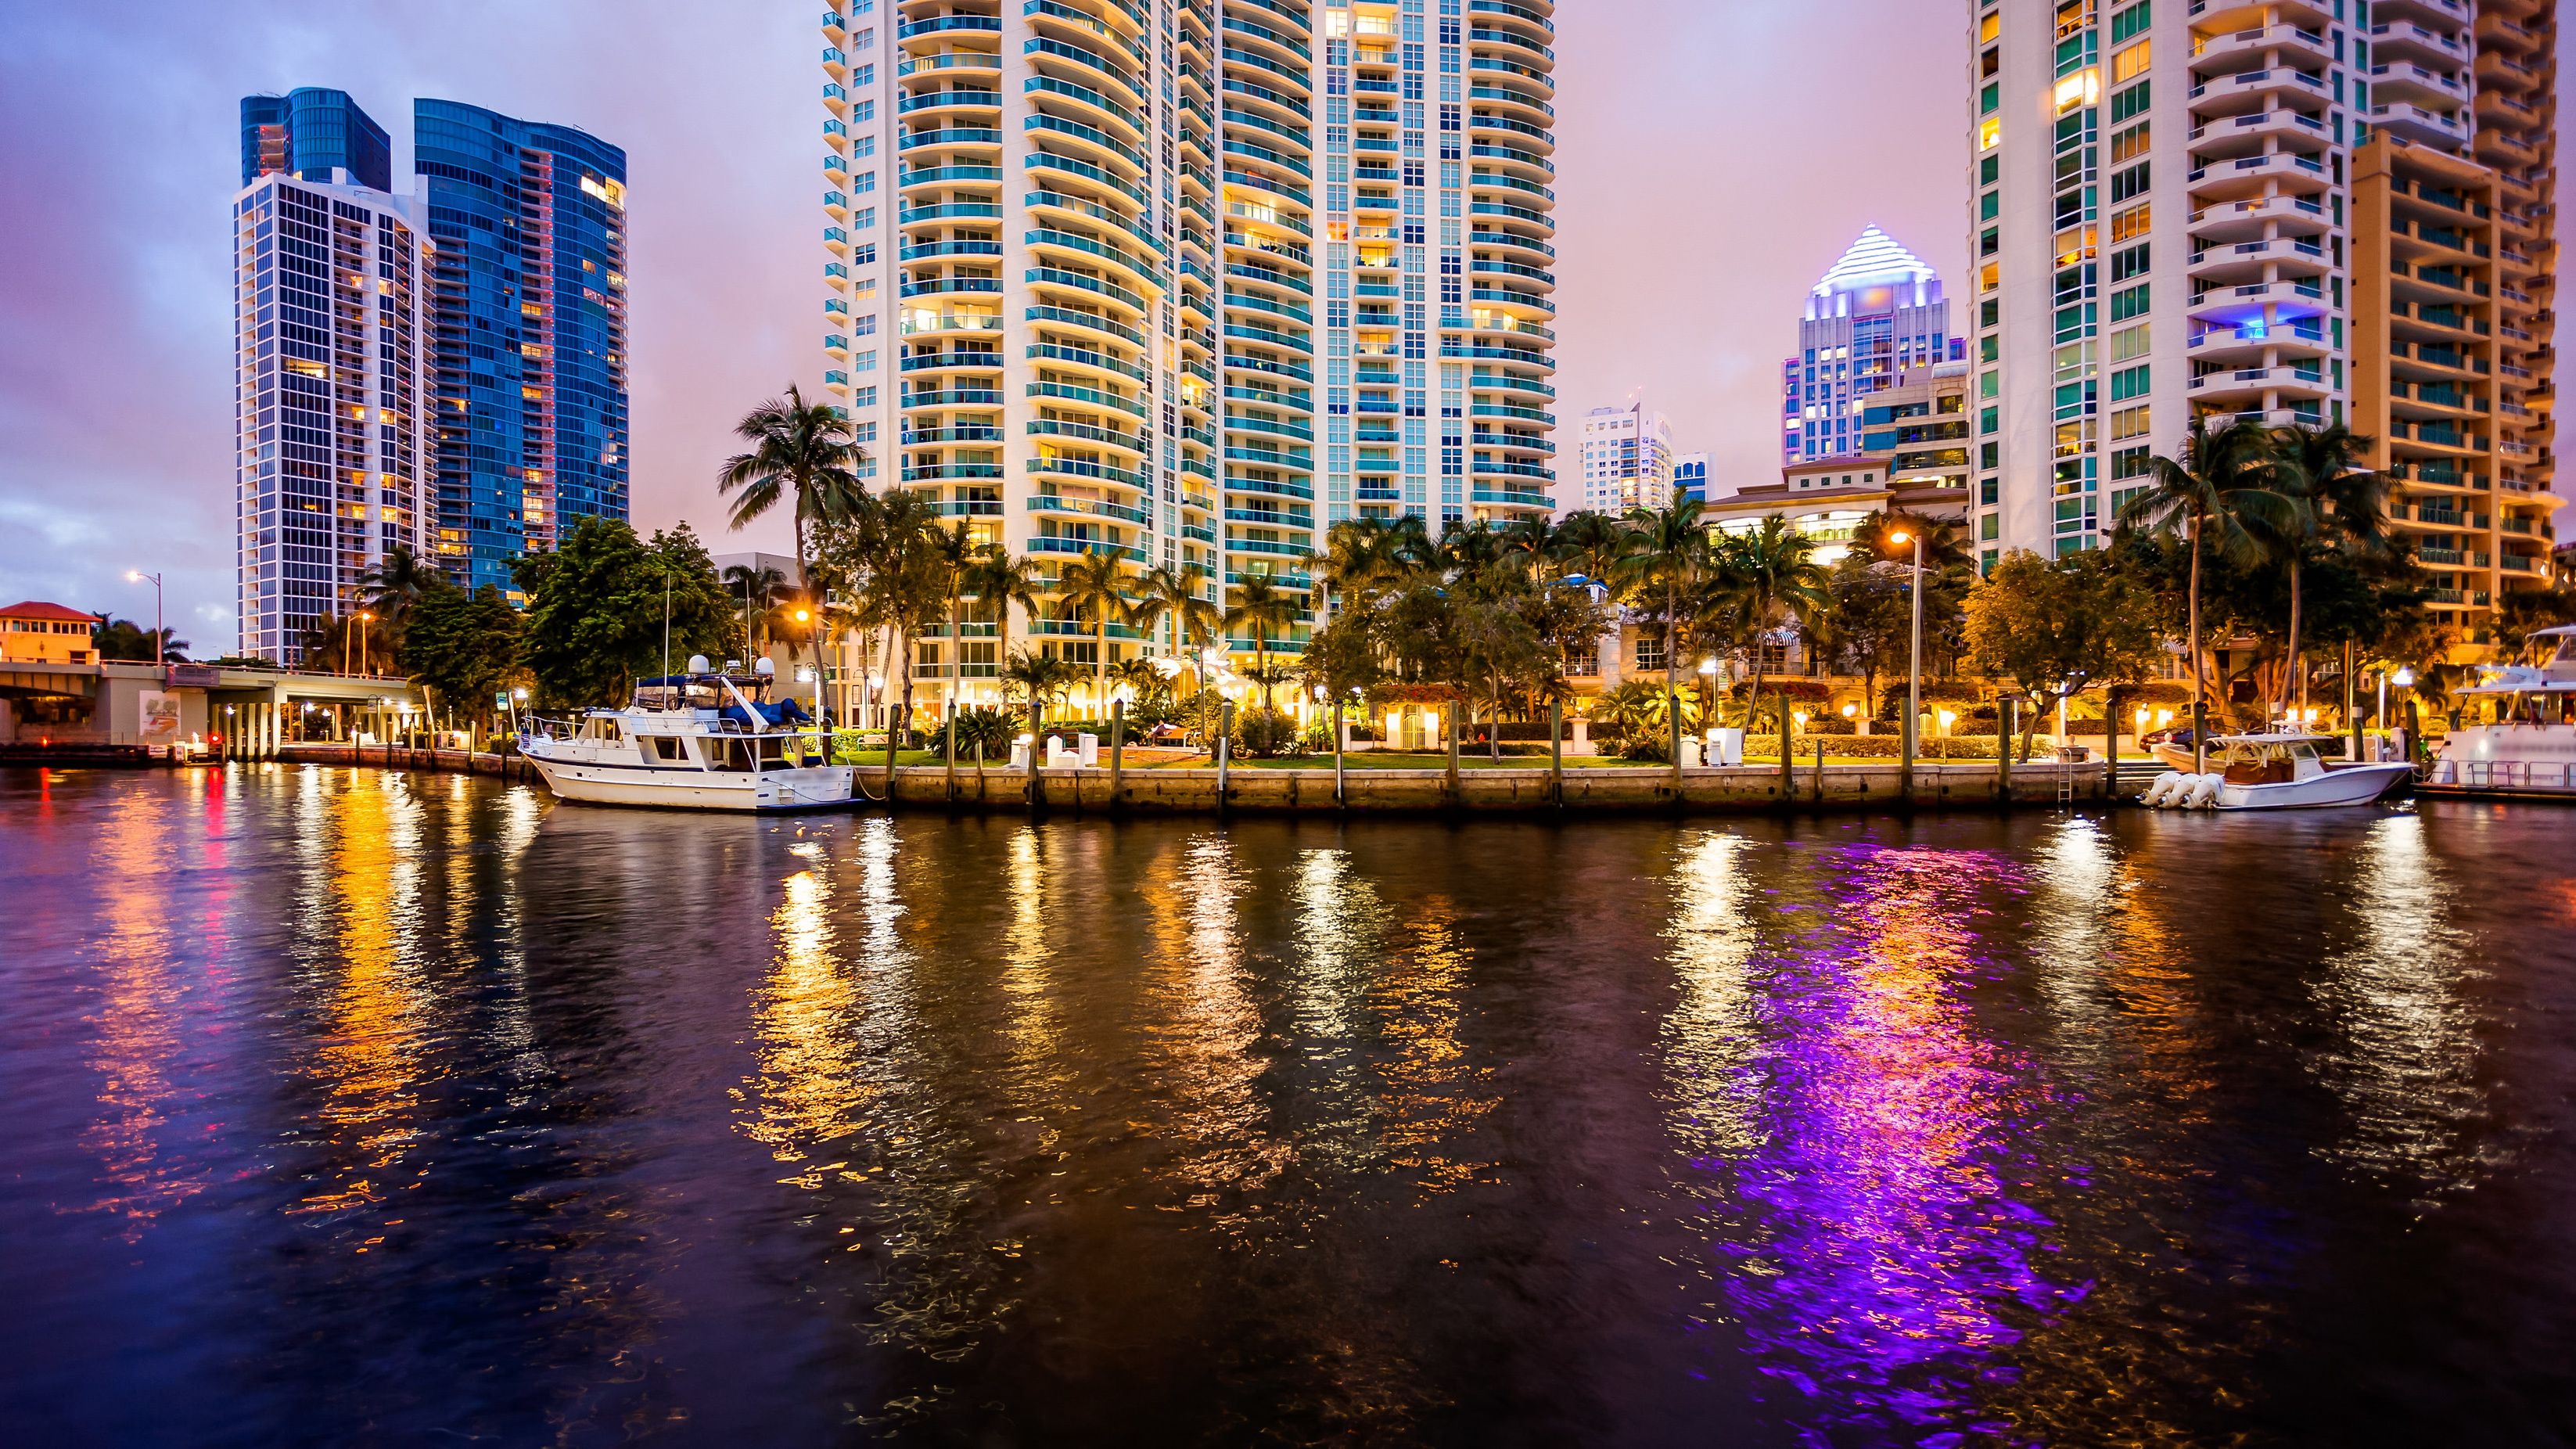 Downtown Fort Lauderdale at night